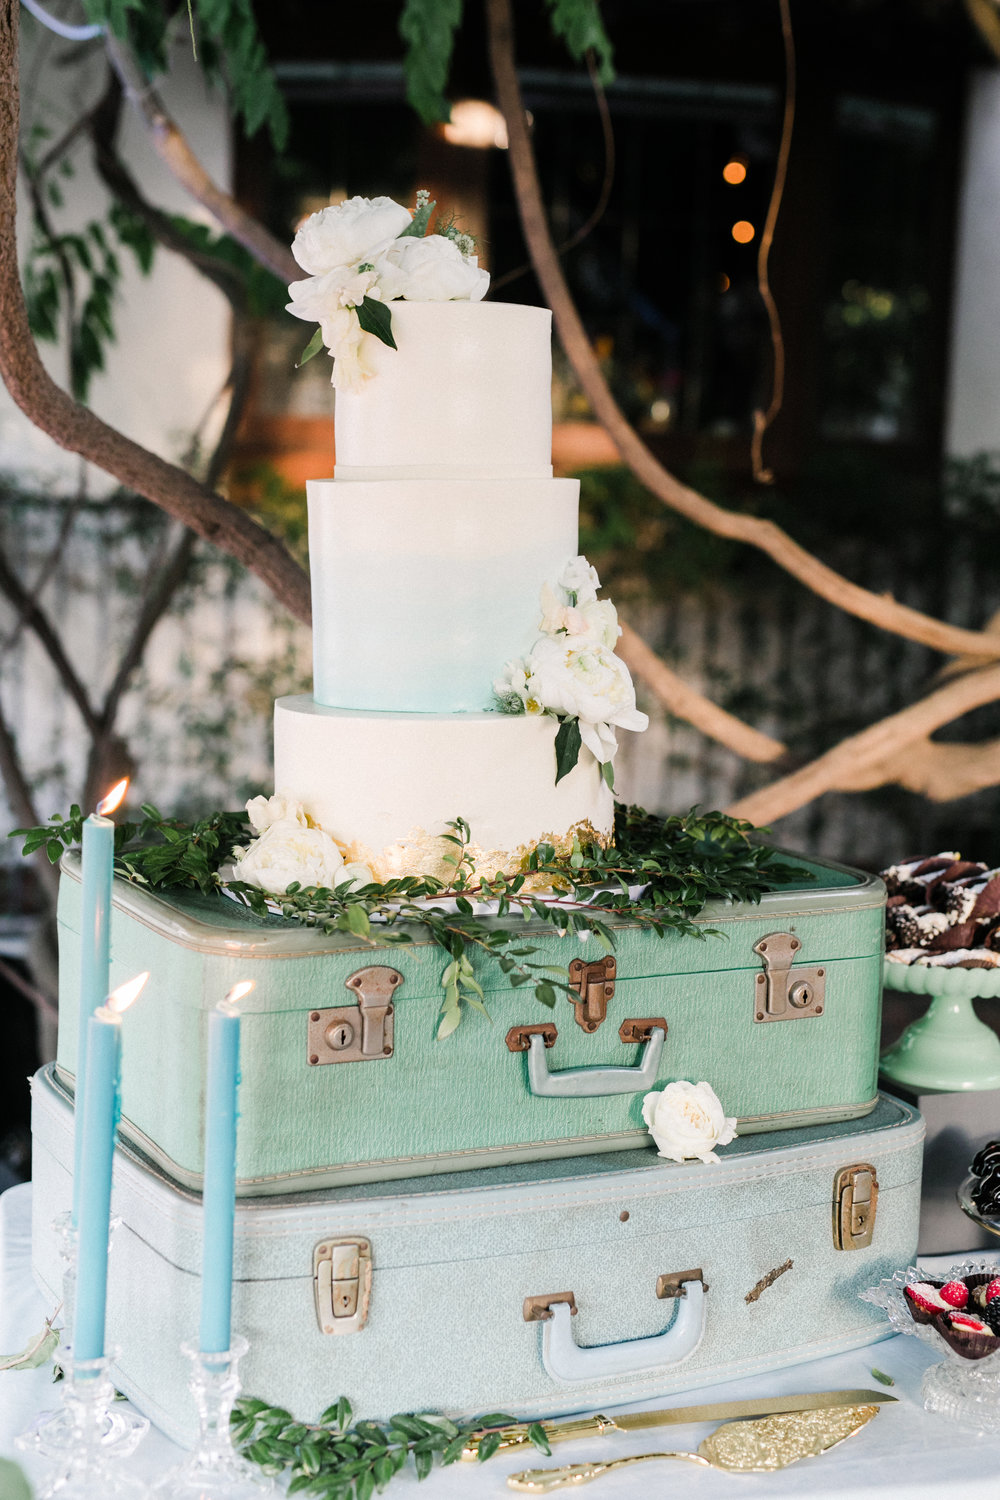 Anna Delores Photography_Jeanine & Kyle 05.21.17-493.jpg